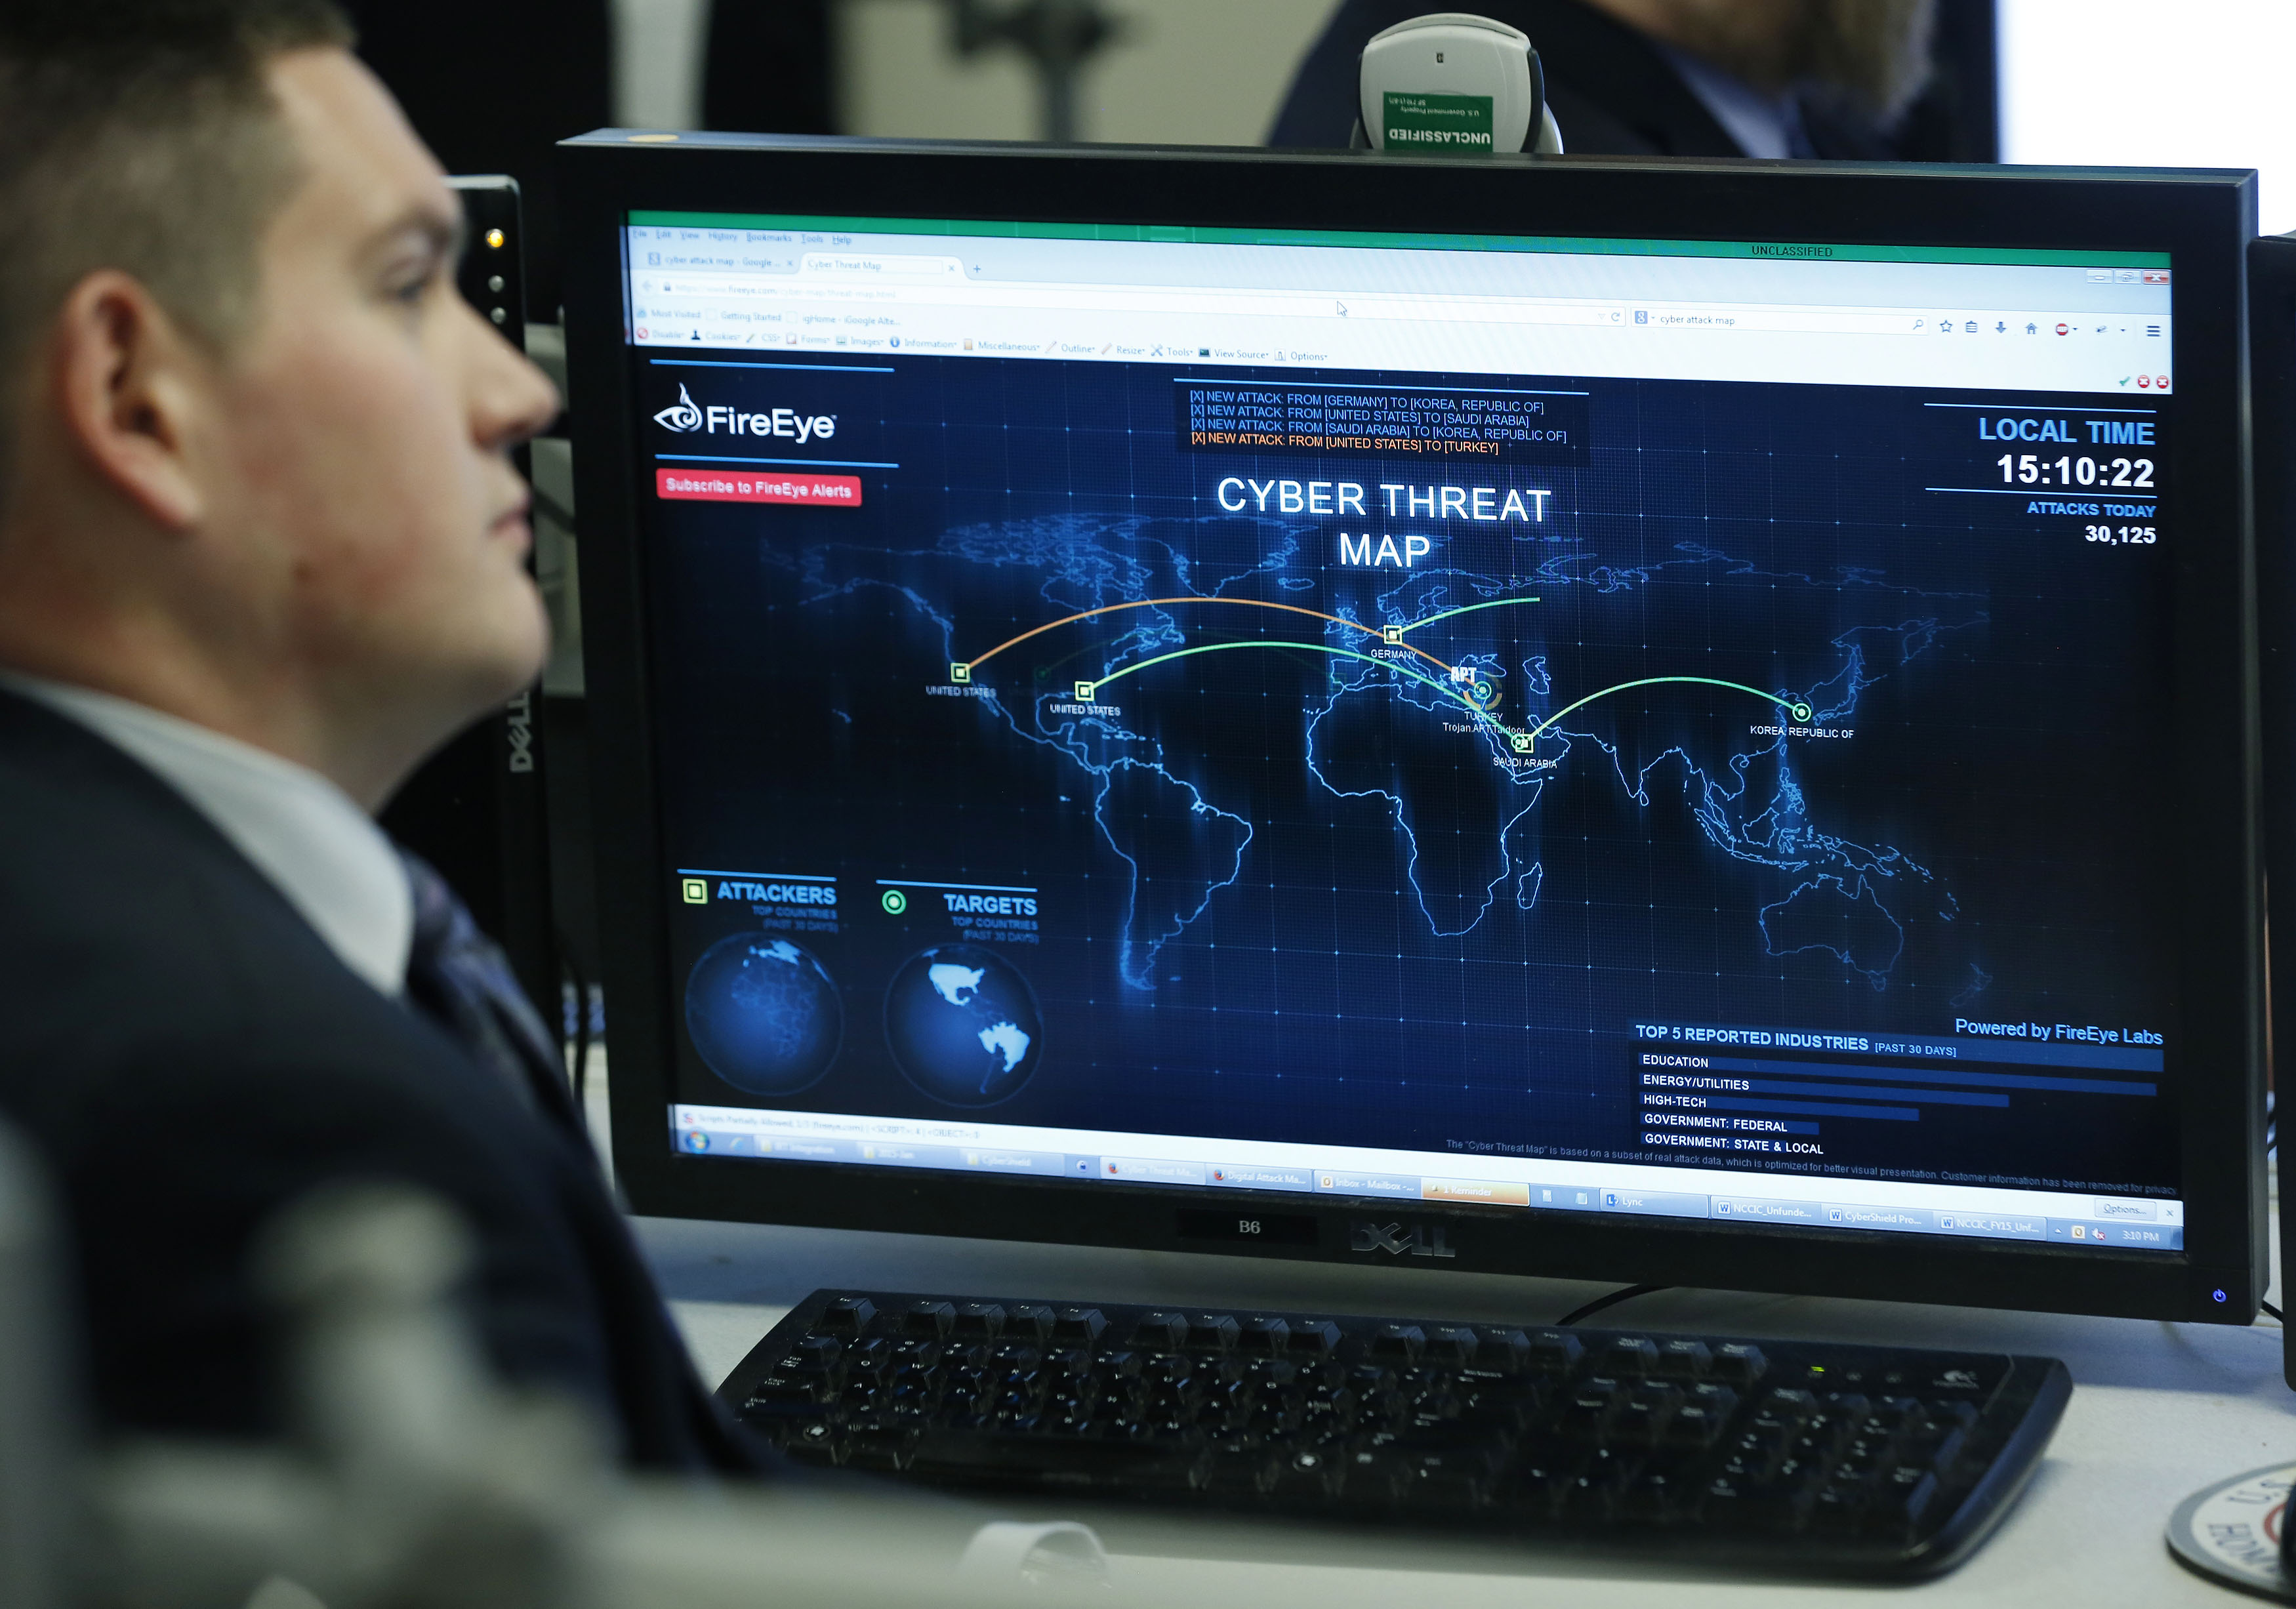 A computer monitor displays a cyber threat map